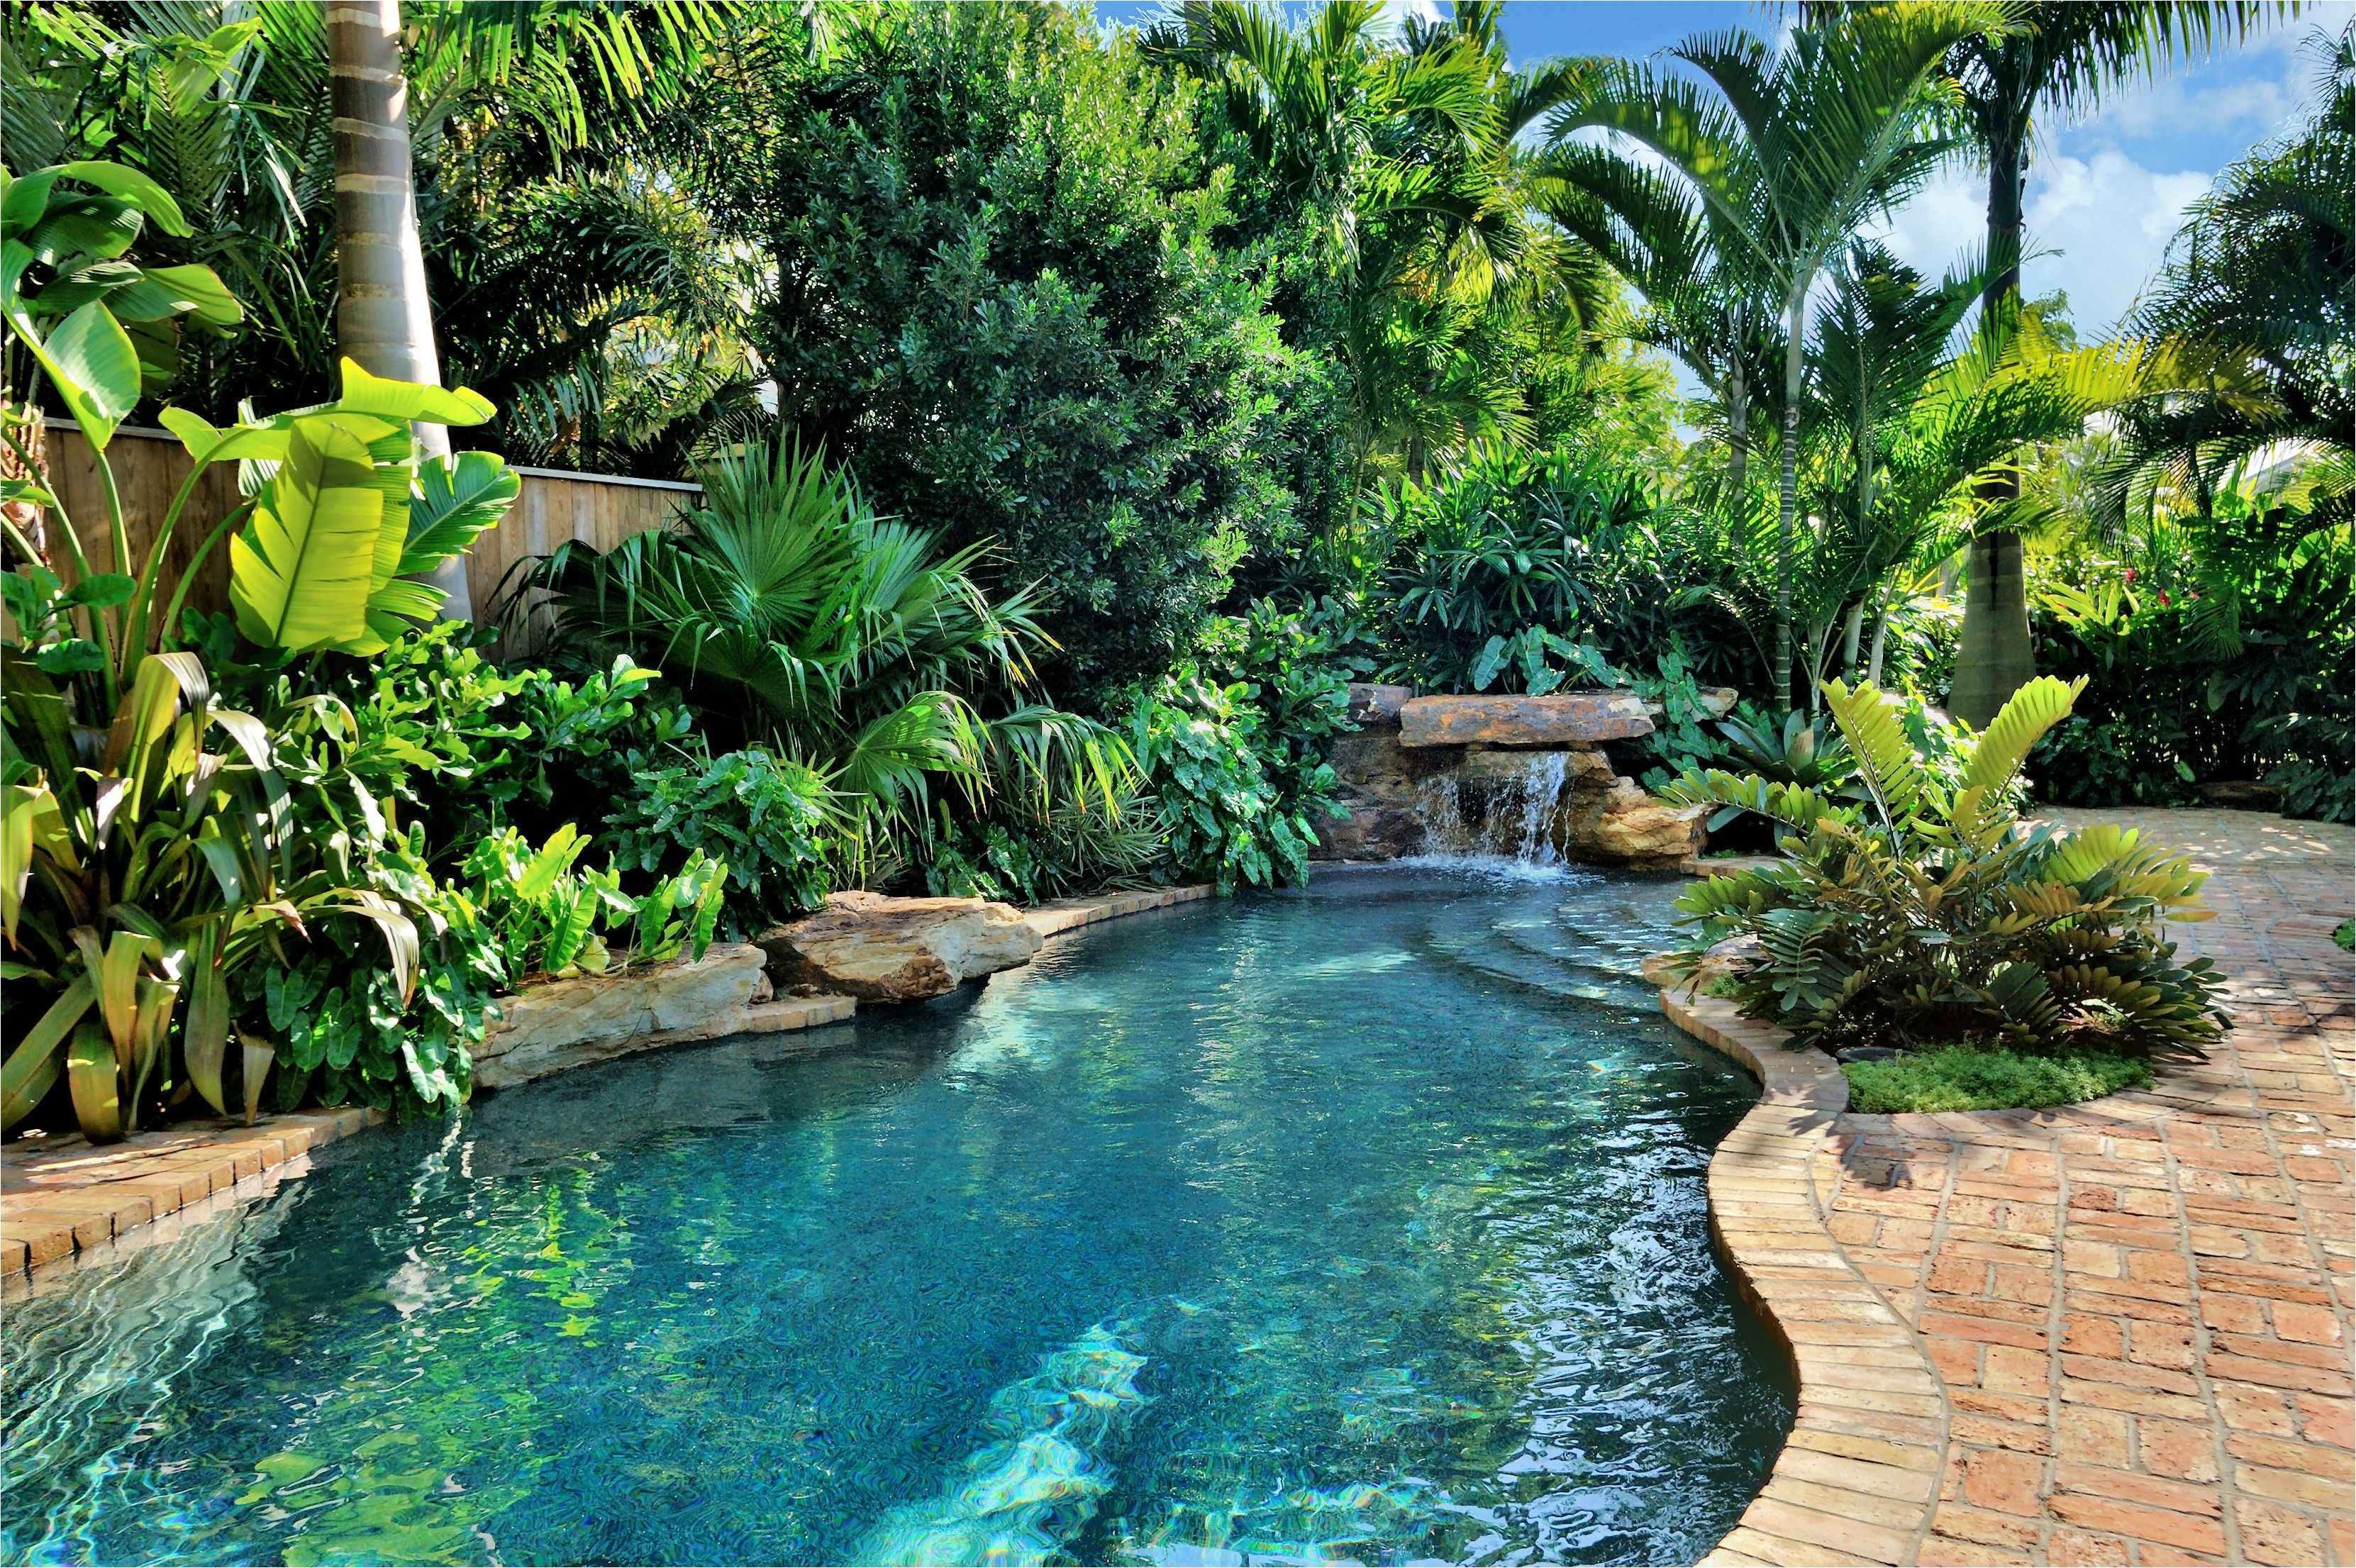 40 Brilliantly Awesome Backyard Pool Ideas To Turn Into Relaxing